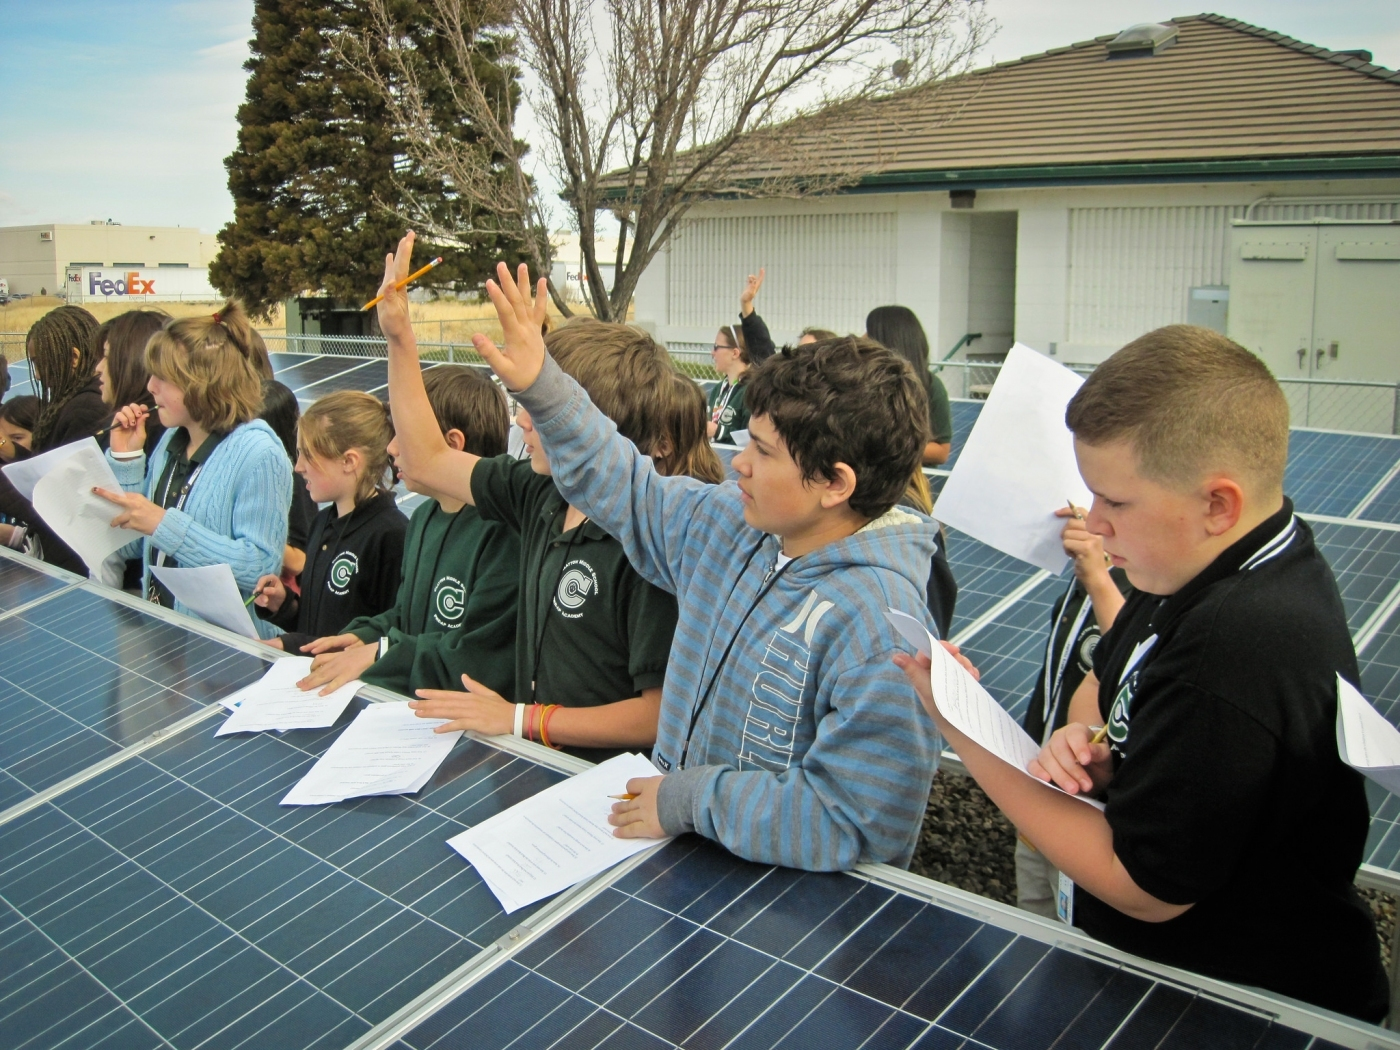 Children learning about solar panels.